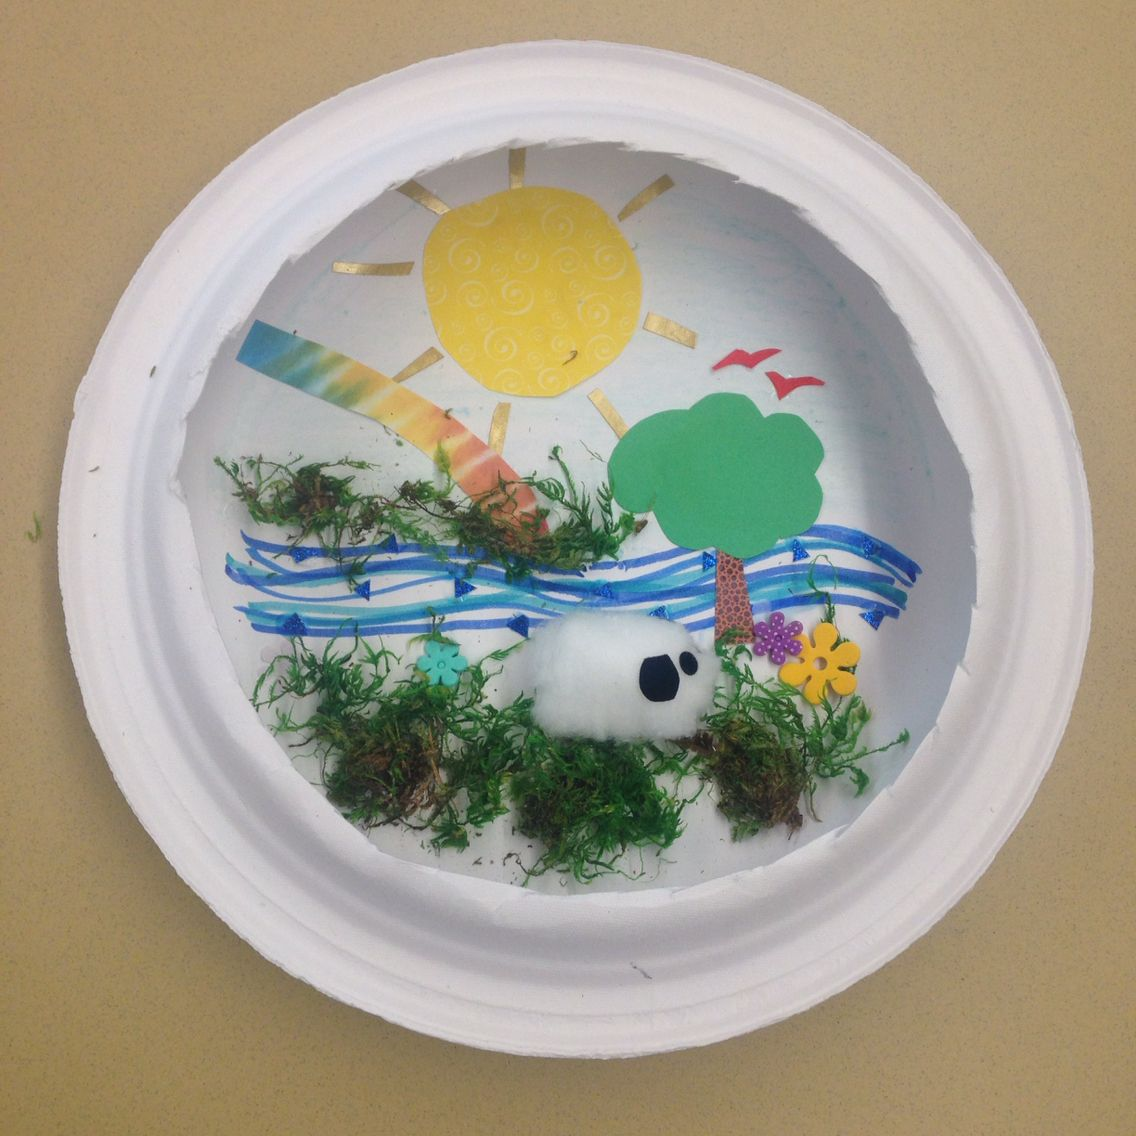 Diorama With Paper Plates Project For Psalm 23 Visualizing And Creating A Peaceful Place